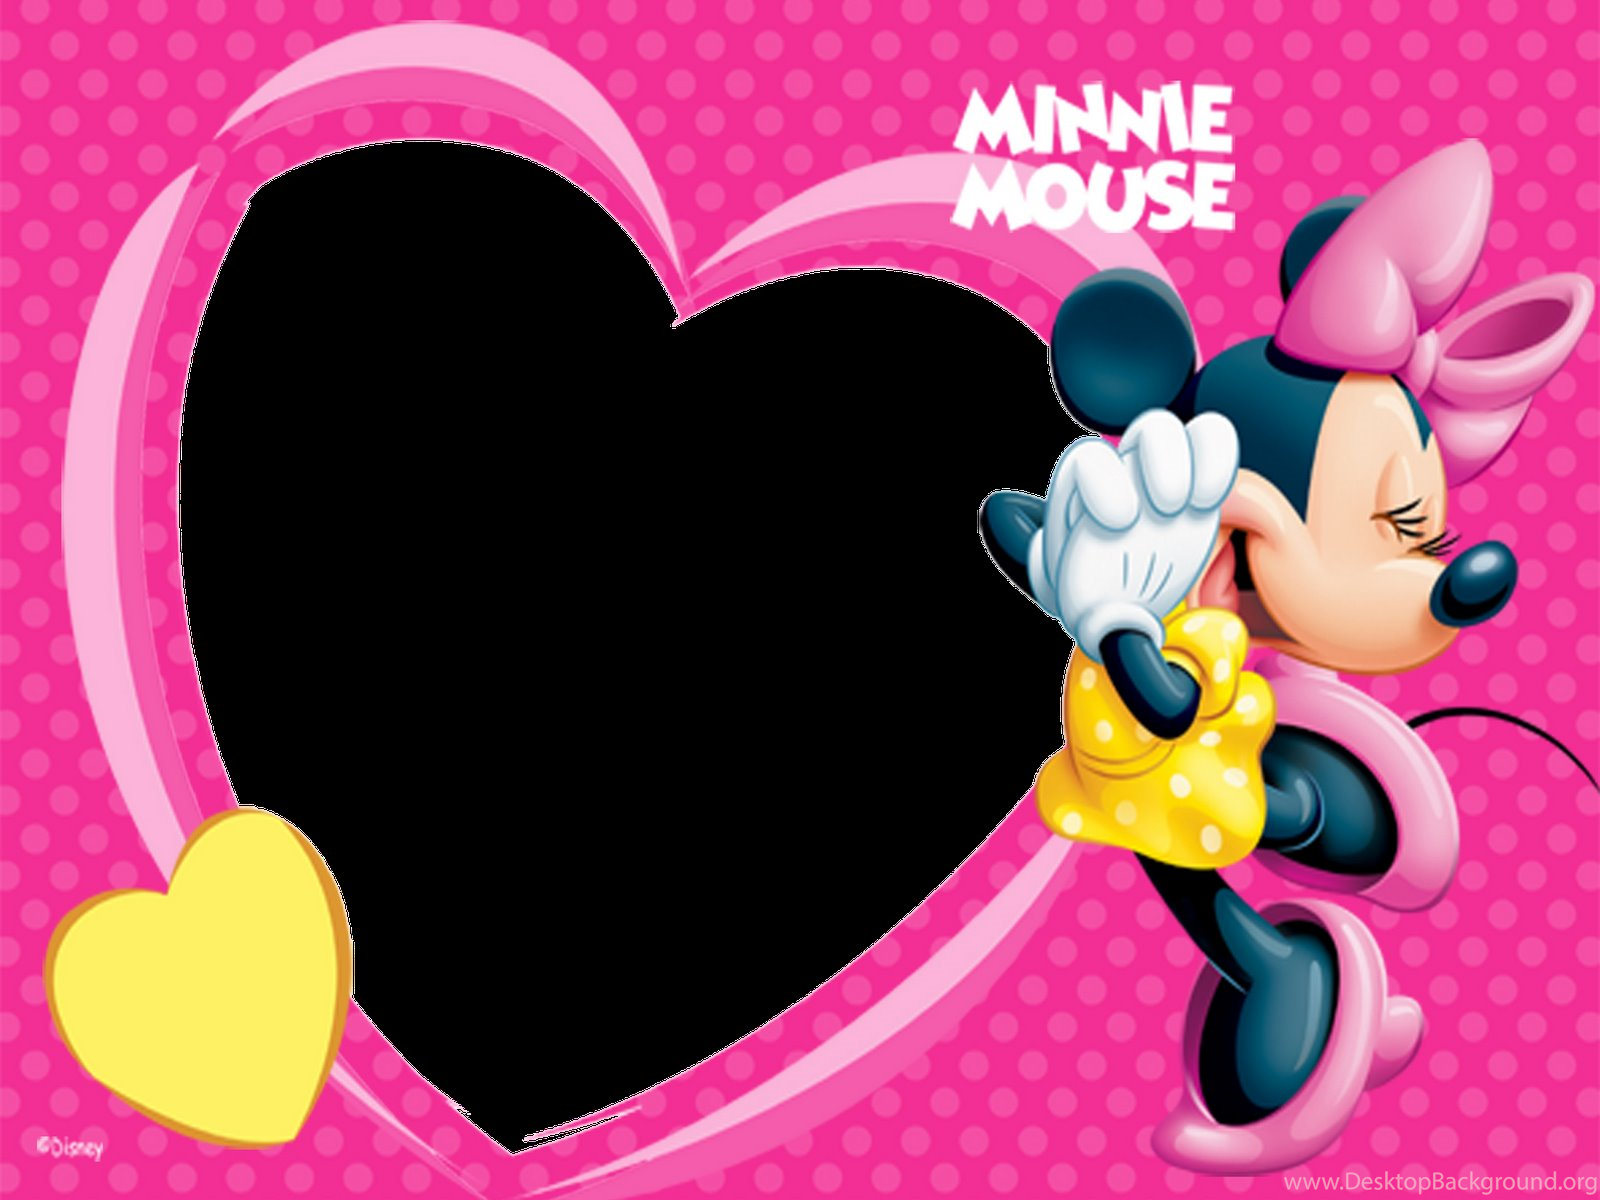 Minnie Mouse Image Wallpapers For Fb Cover Cartoons